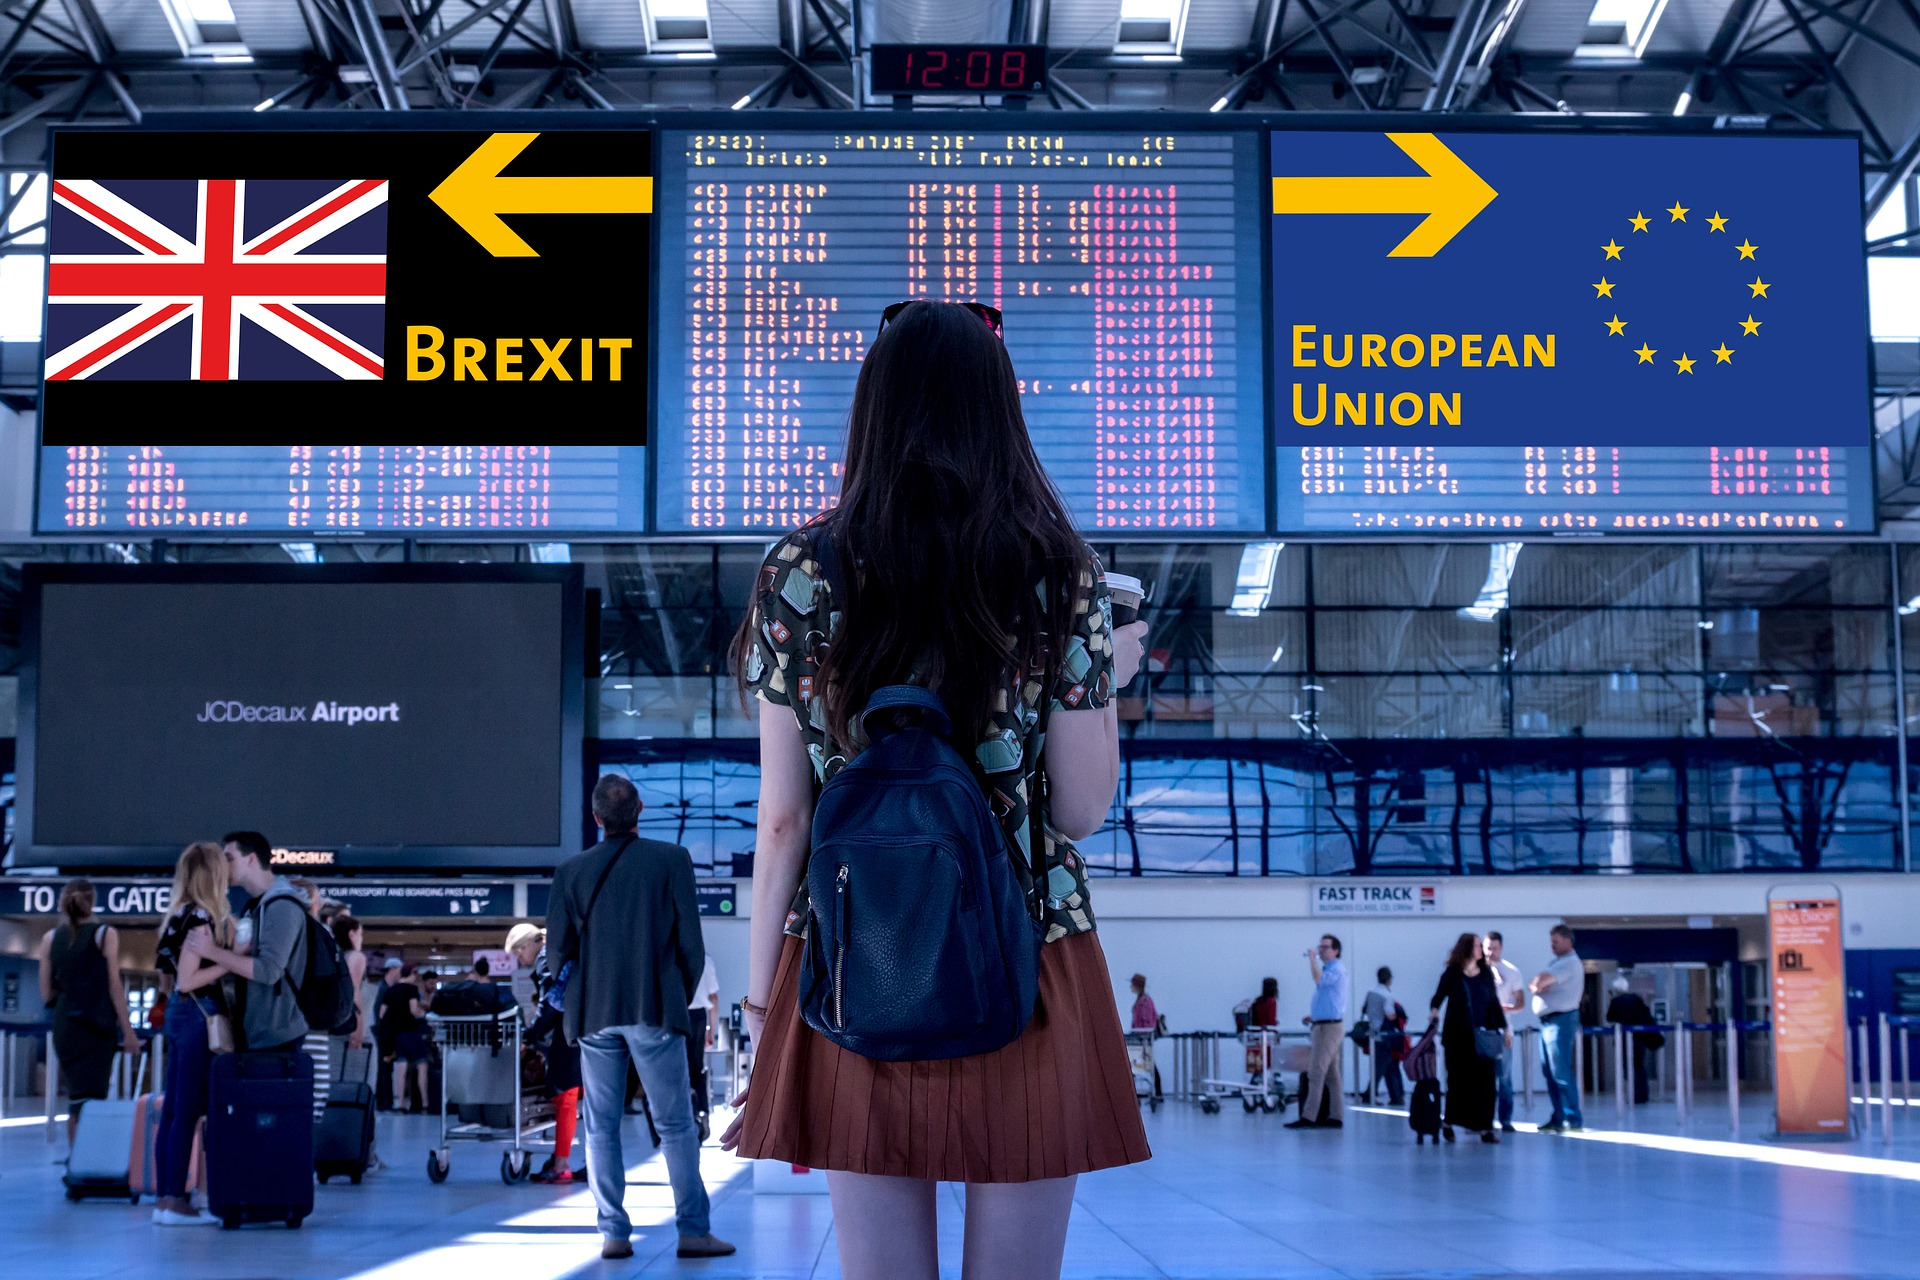 Rights of EU nationals in the UK after Brexit